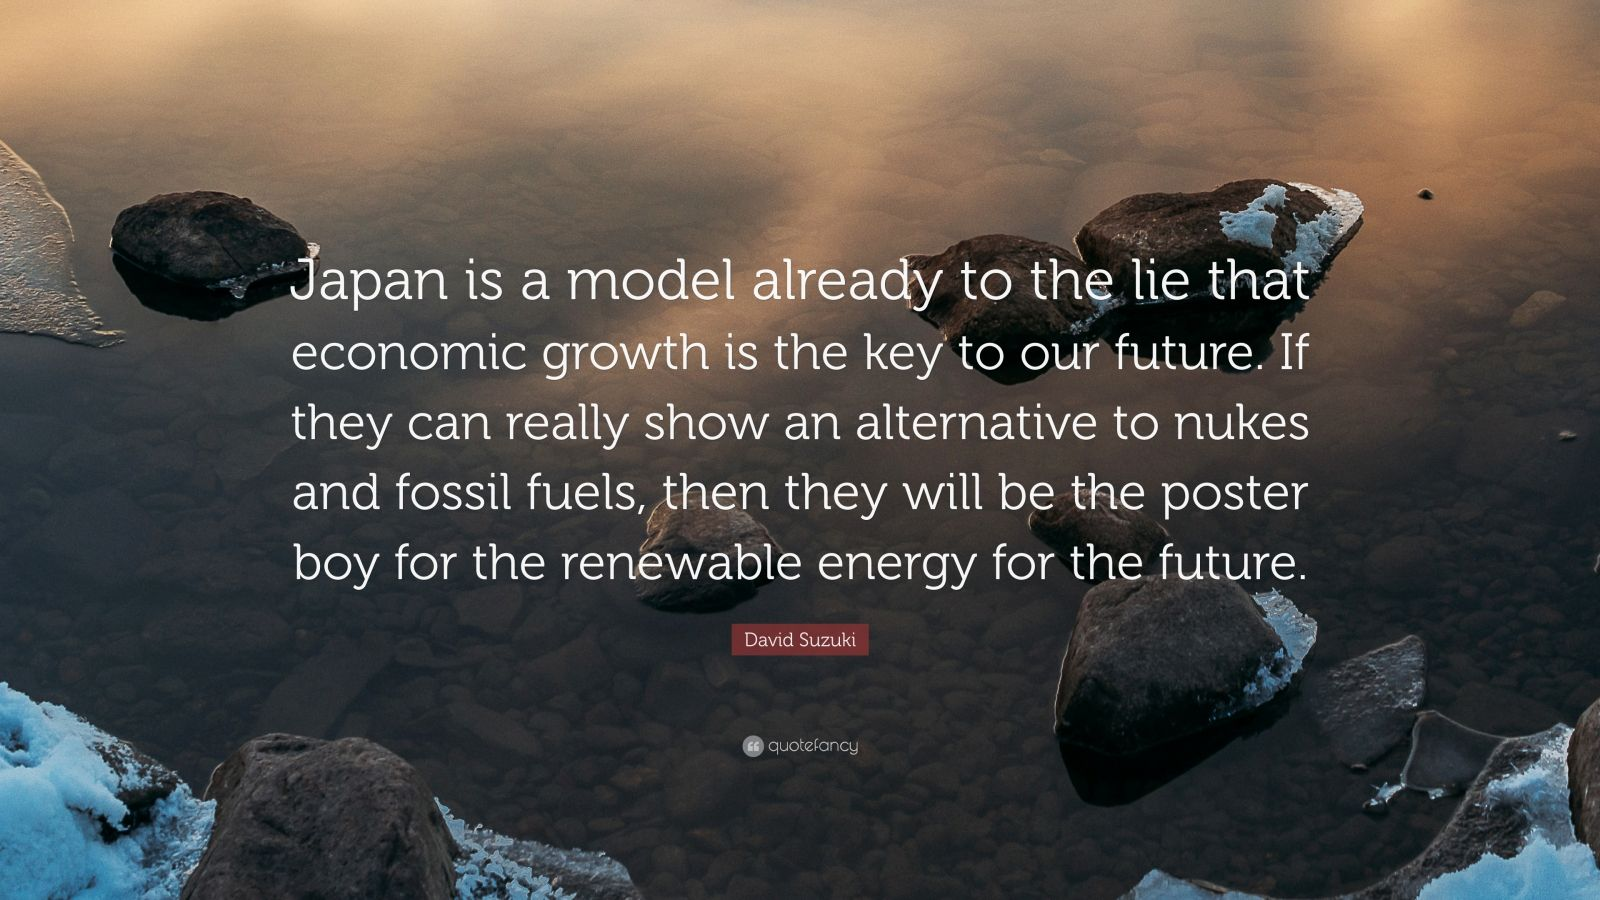 """David Suzuki Quote: """"Japan is a model already to the lie that economic growth is the key to our future. If they can really show an alternative to nukes and fossil fuels, then they will be the poster boy for the renewable energy for the future."""""""